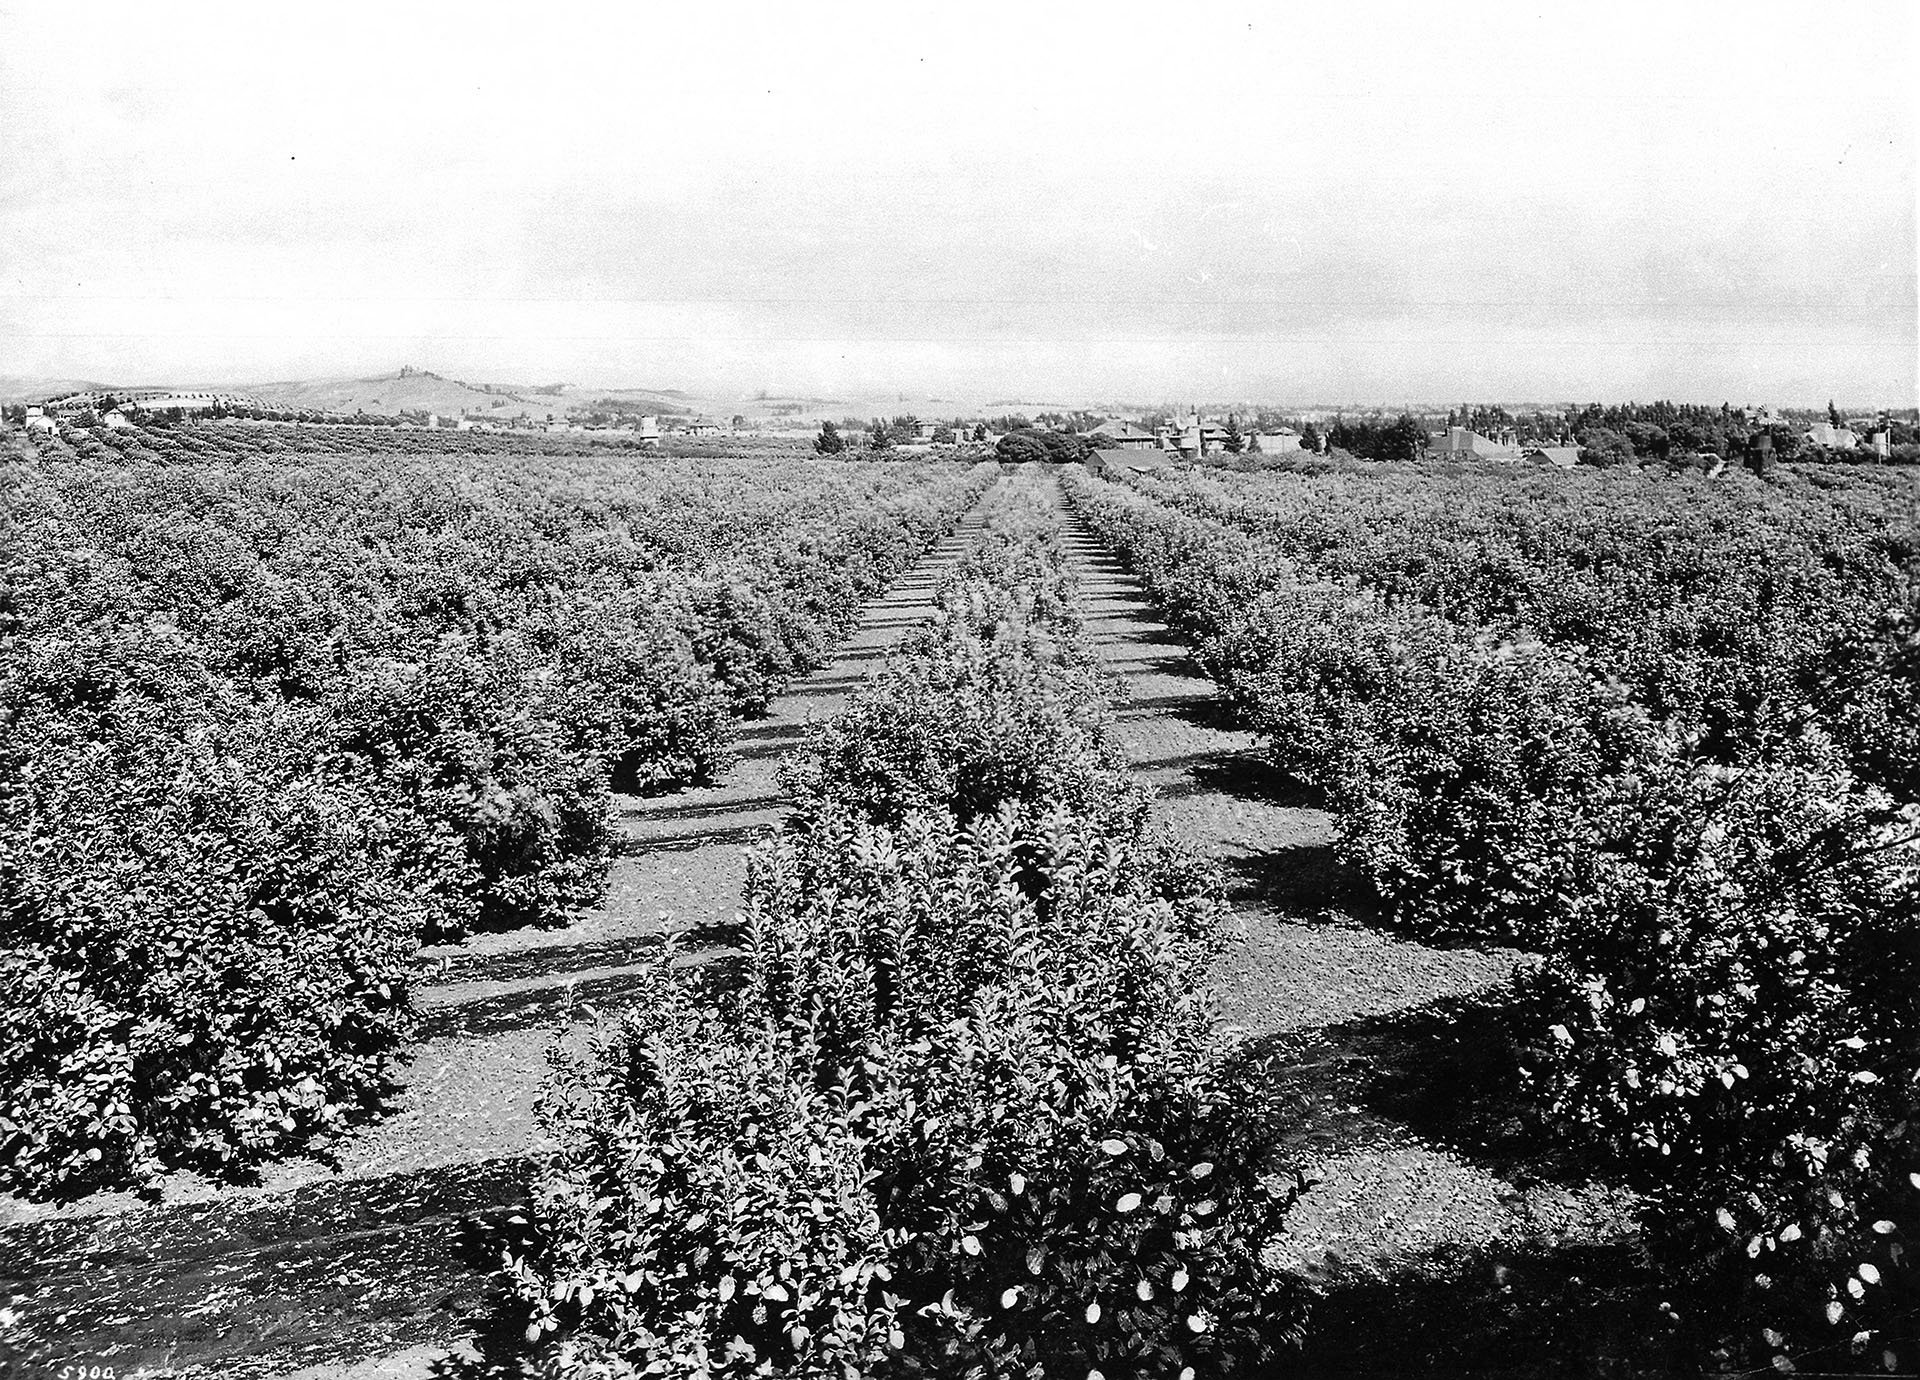 Panoramic view of East Hollywood looking northeast from lemon groves, Los Angeles, ca.1905